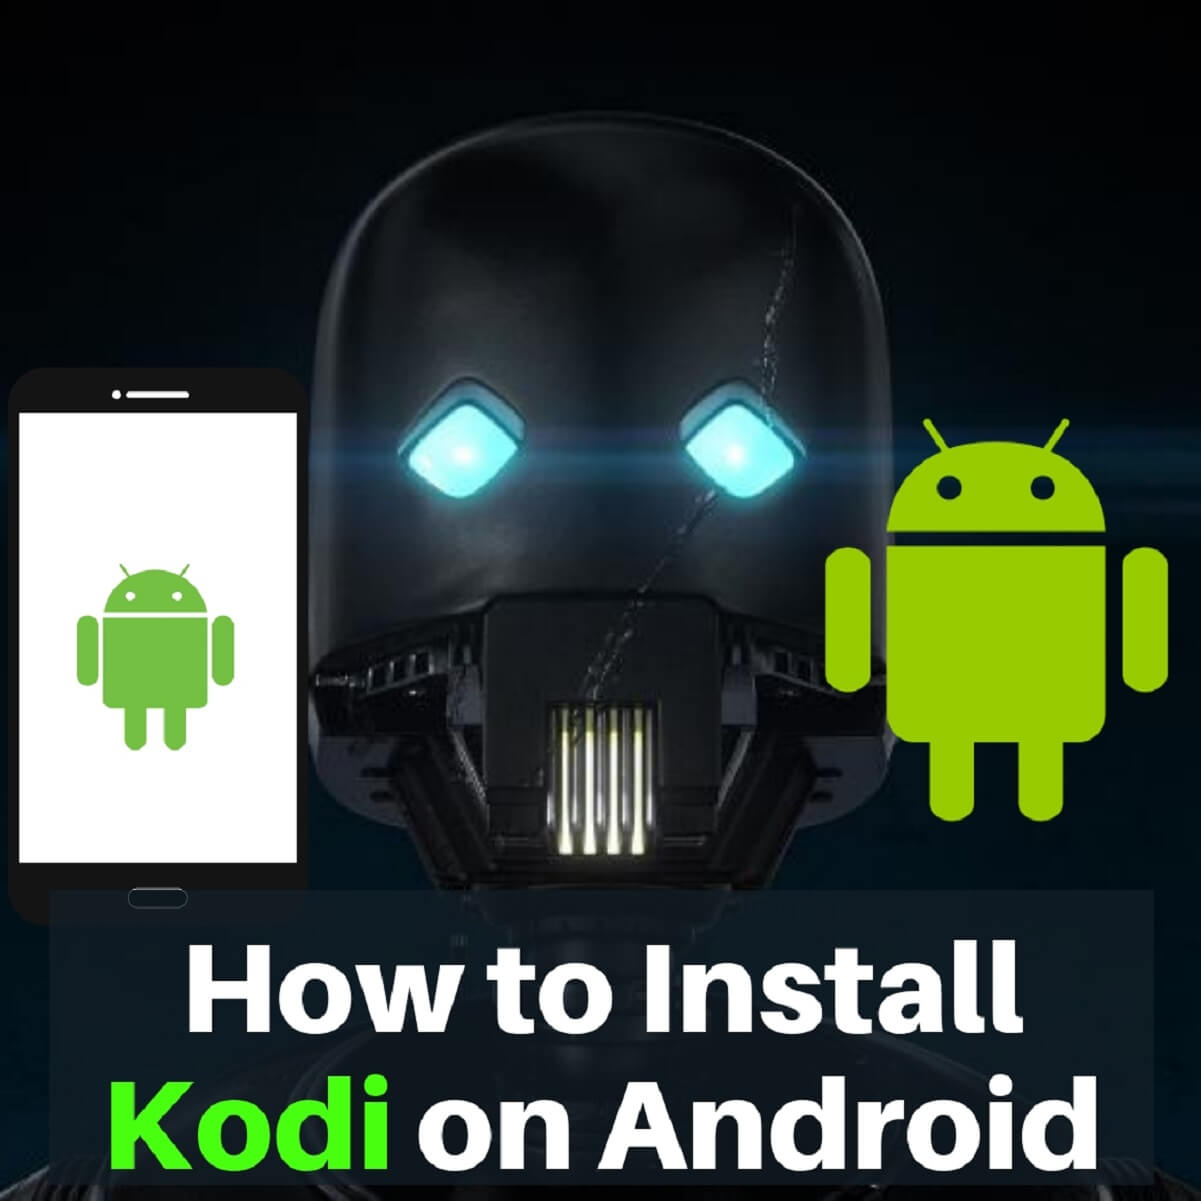 How to Install Kodi on Android, Android TV Box